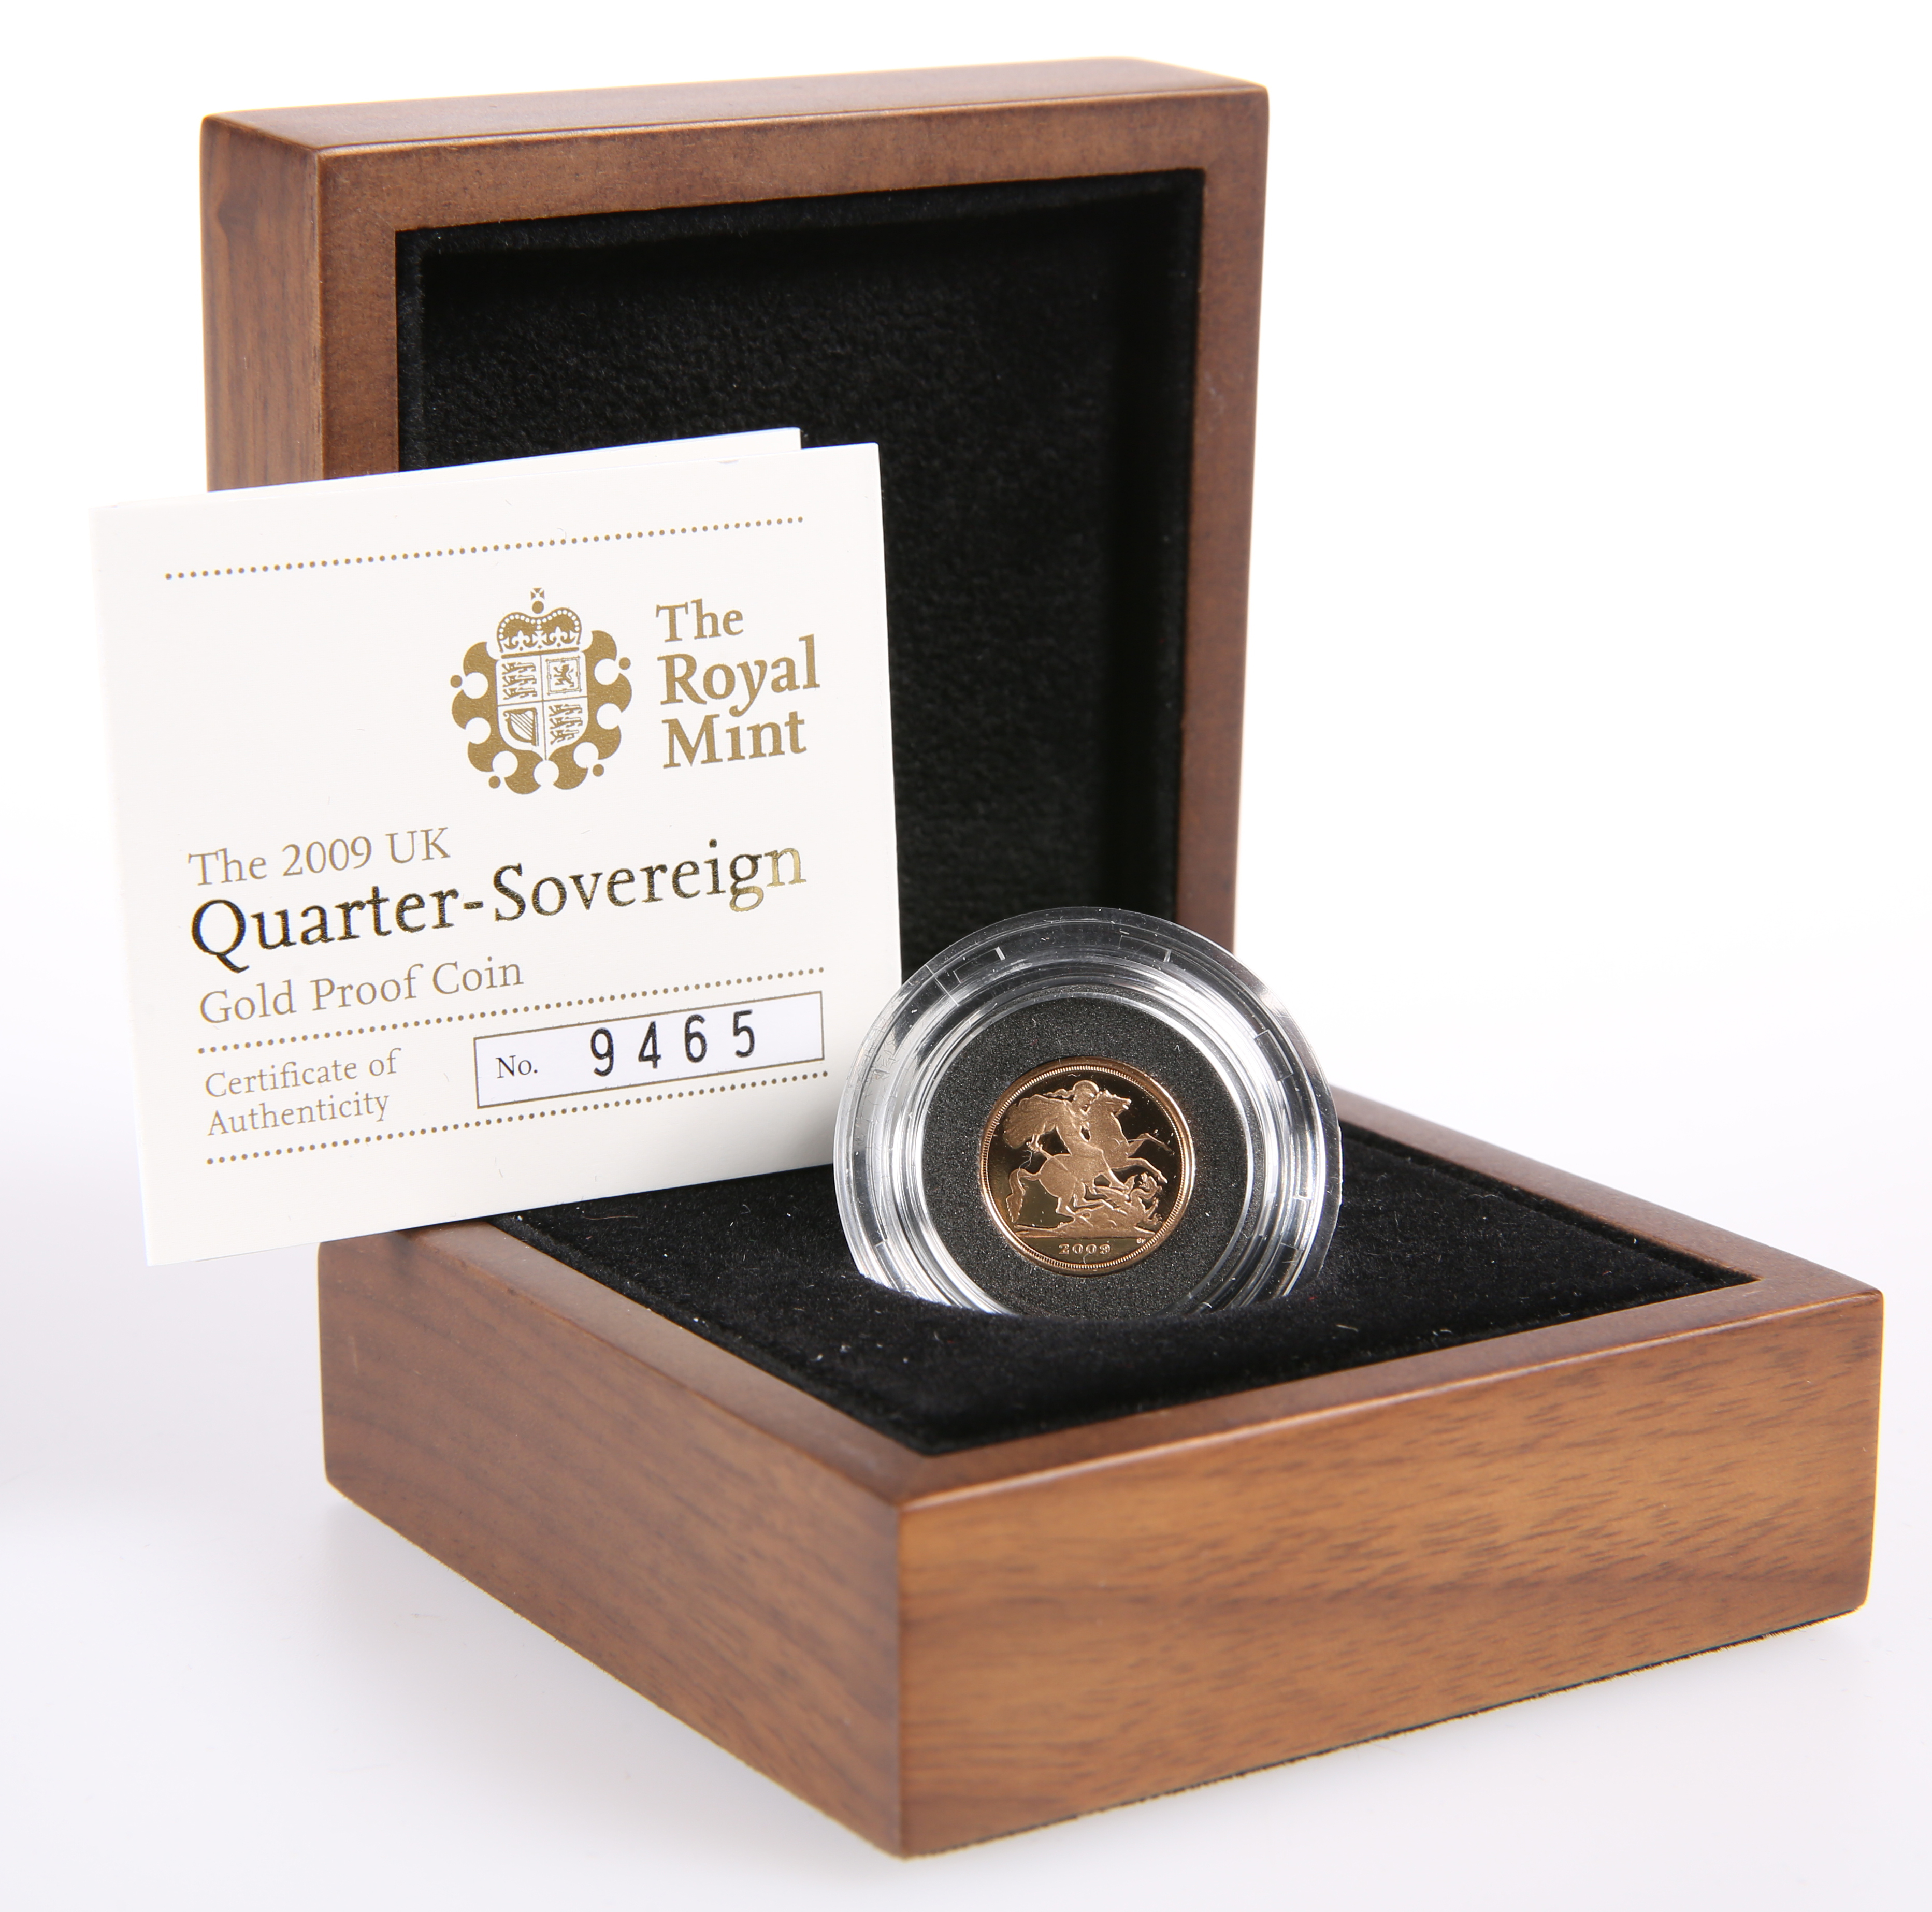 A ROYAL MINT 2009 QUARTER-SOVEREIGN GOLD PROOF COIN, boxed with COA no. 9465